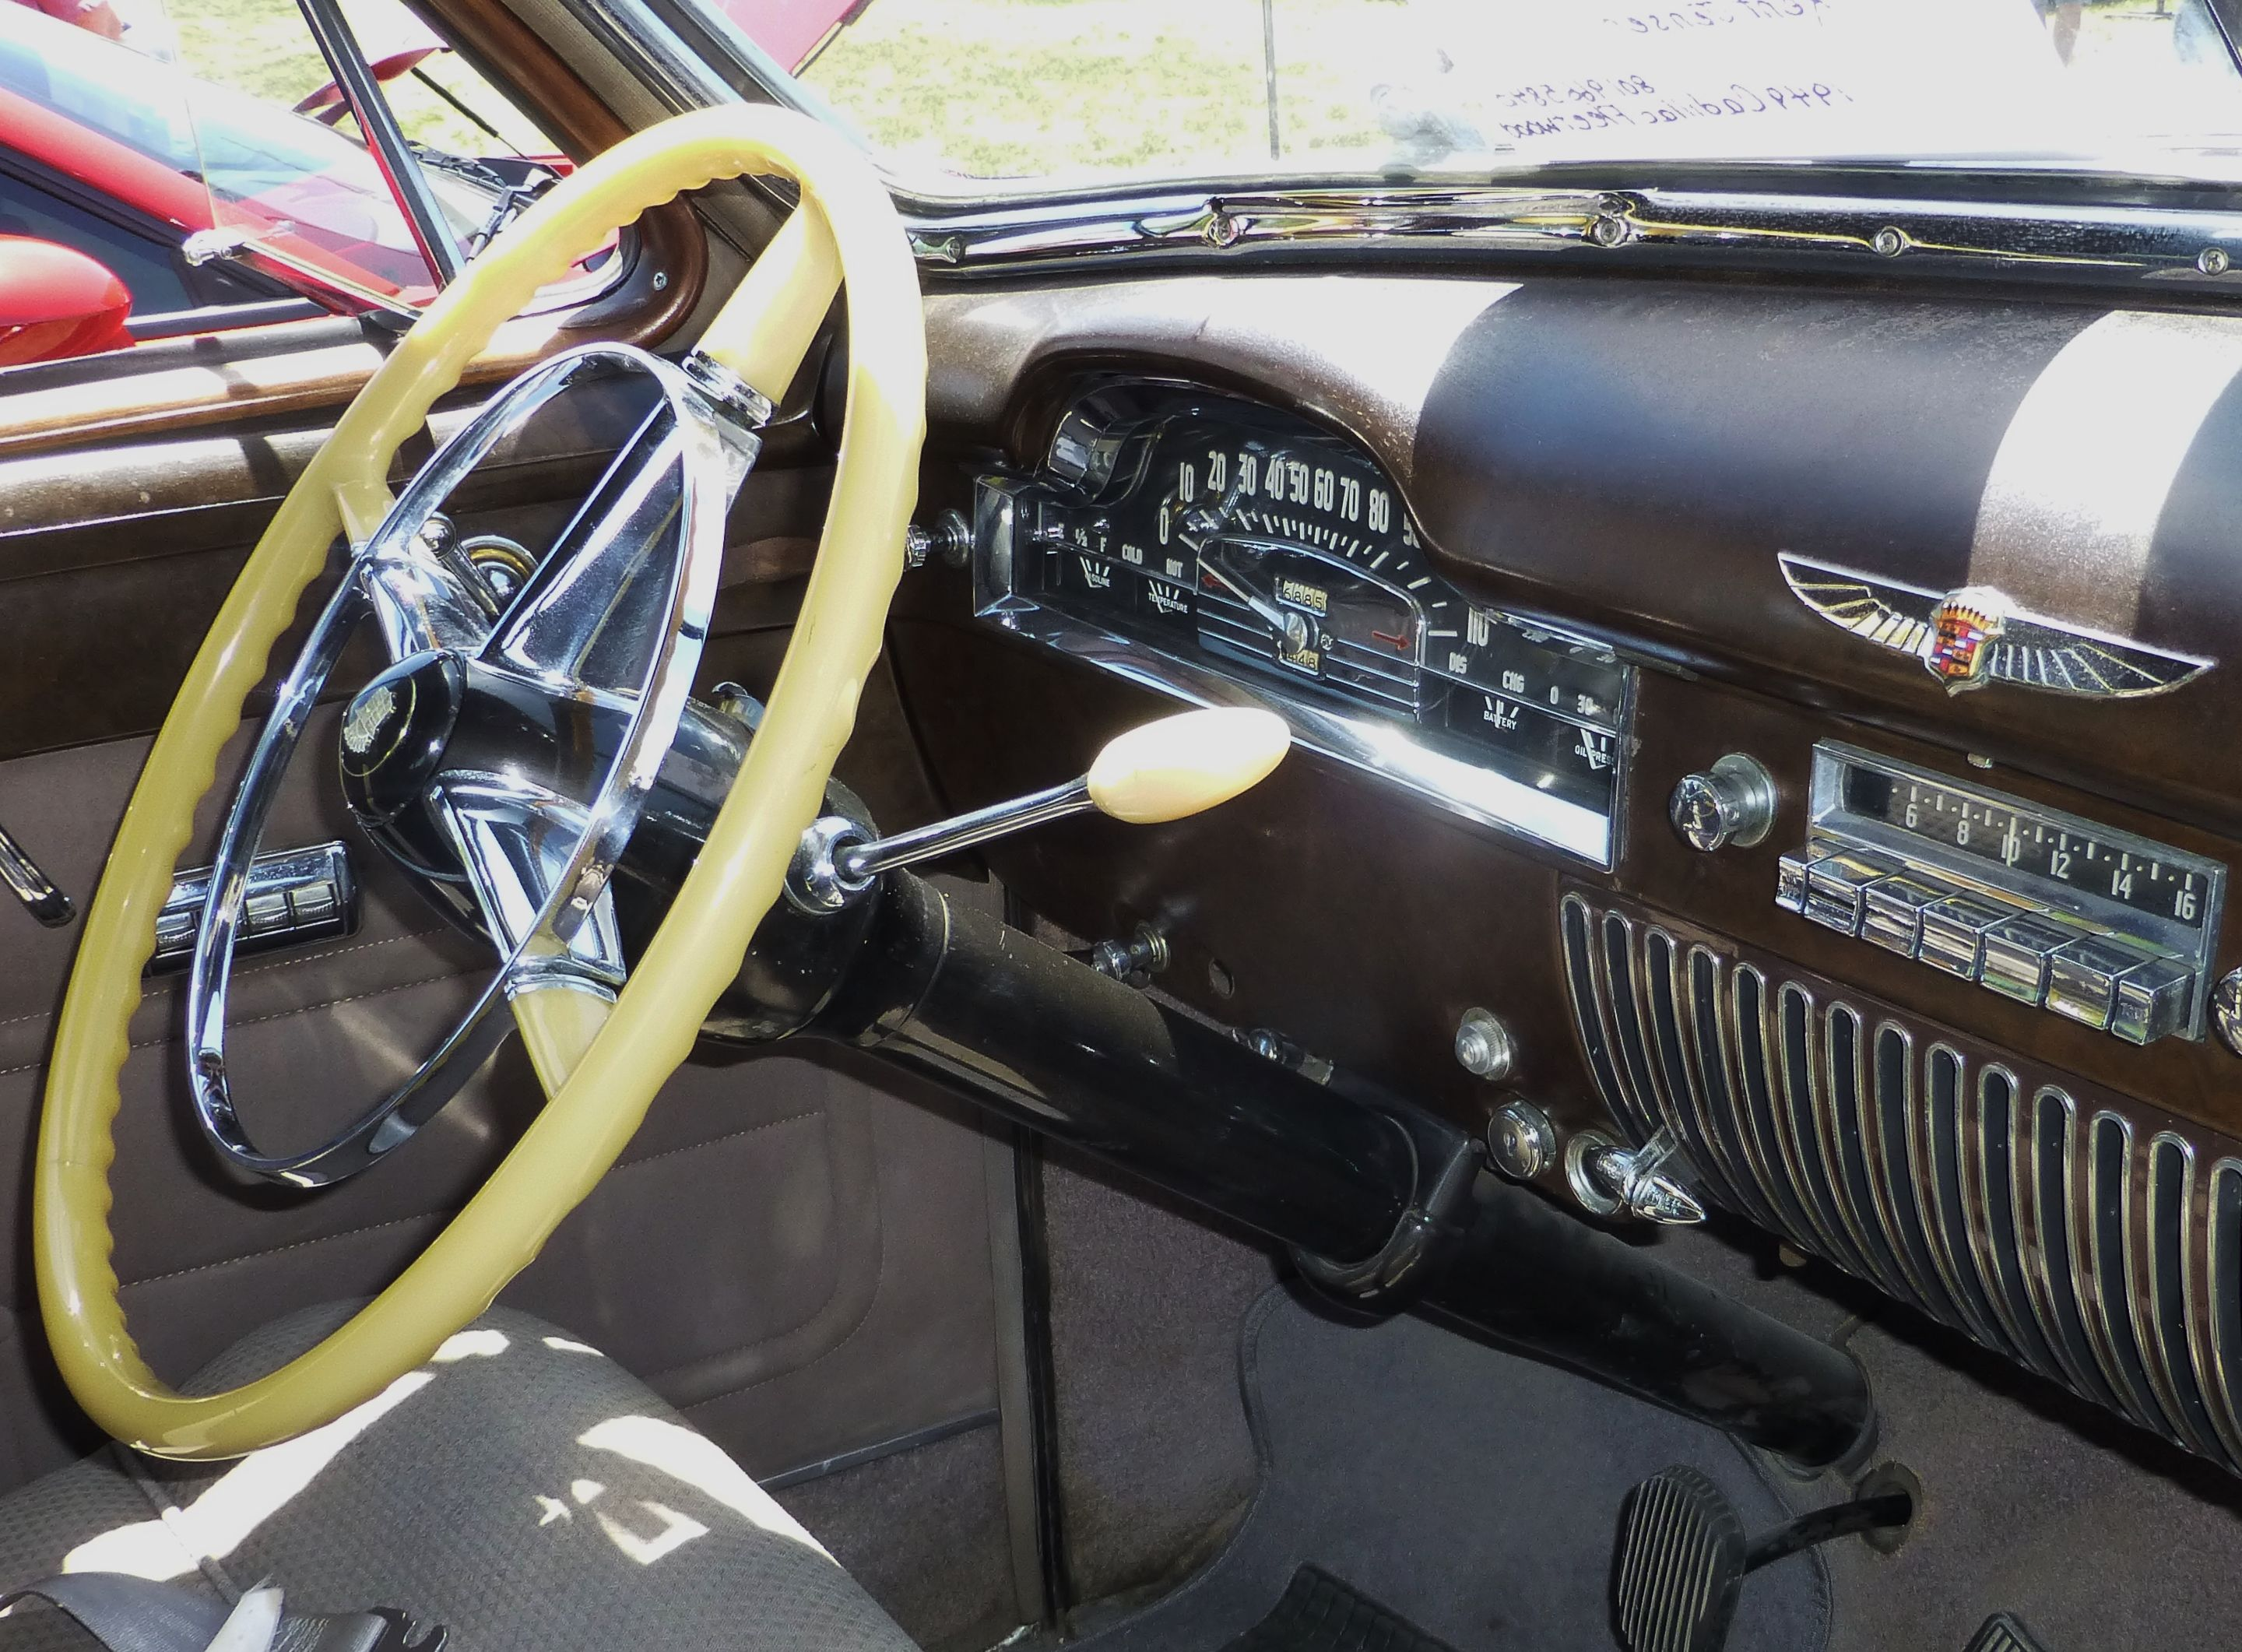 Pin On Automobile Instrument Panels